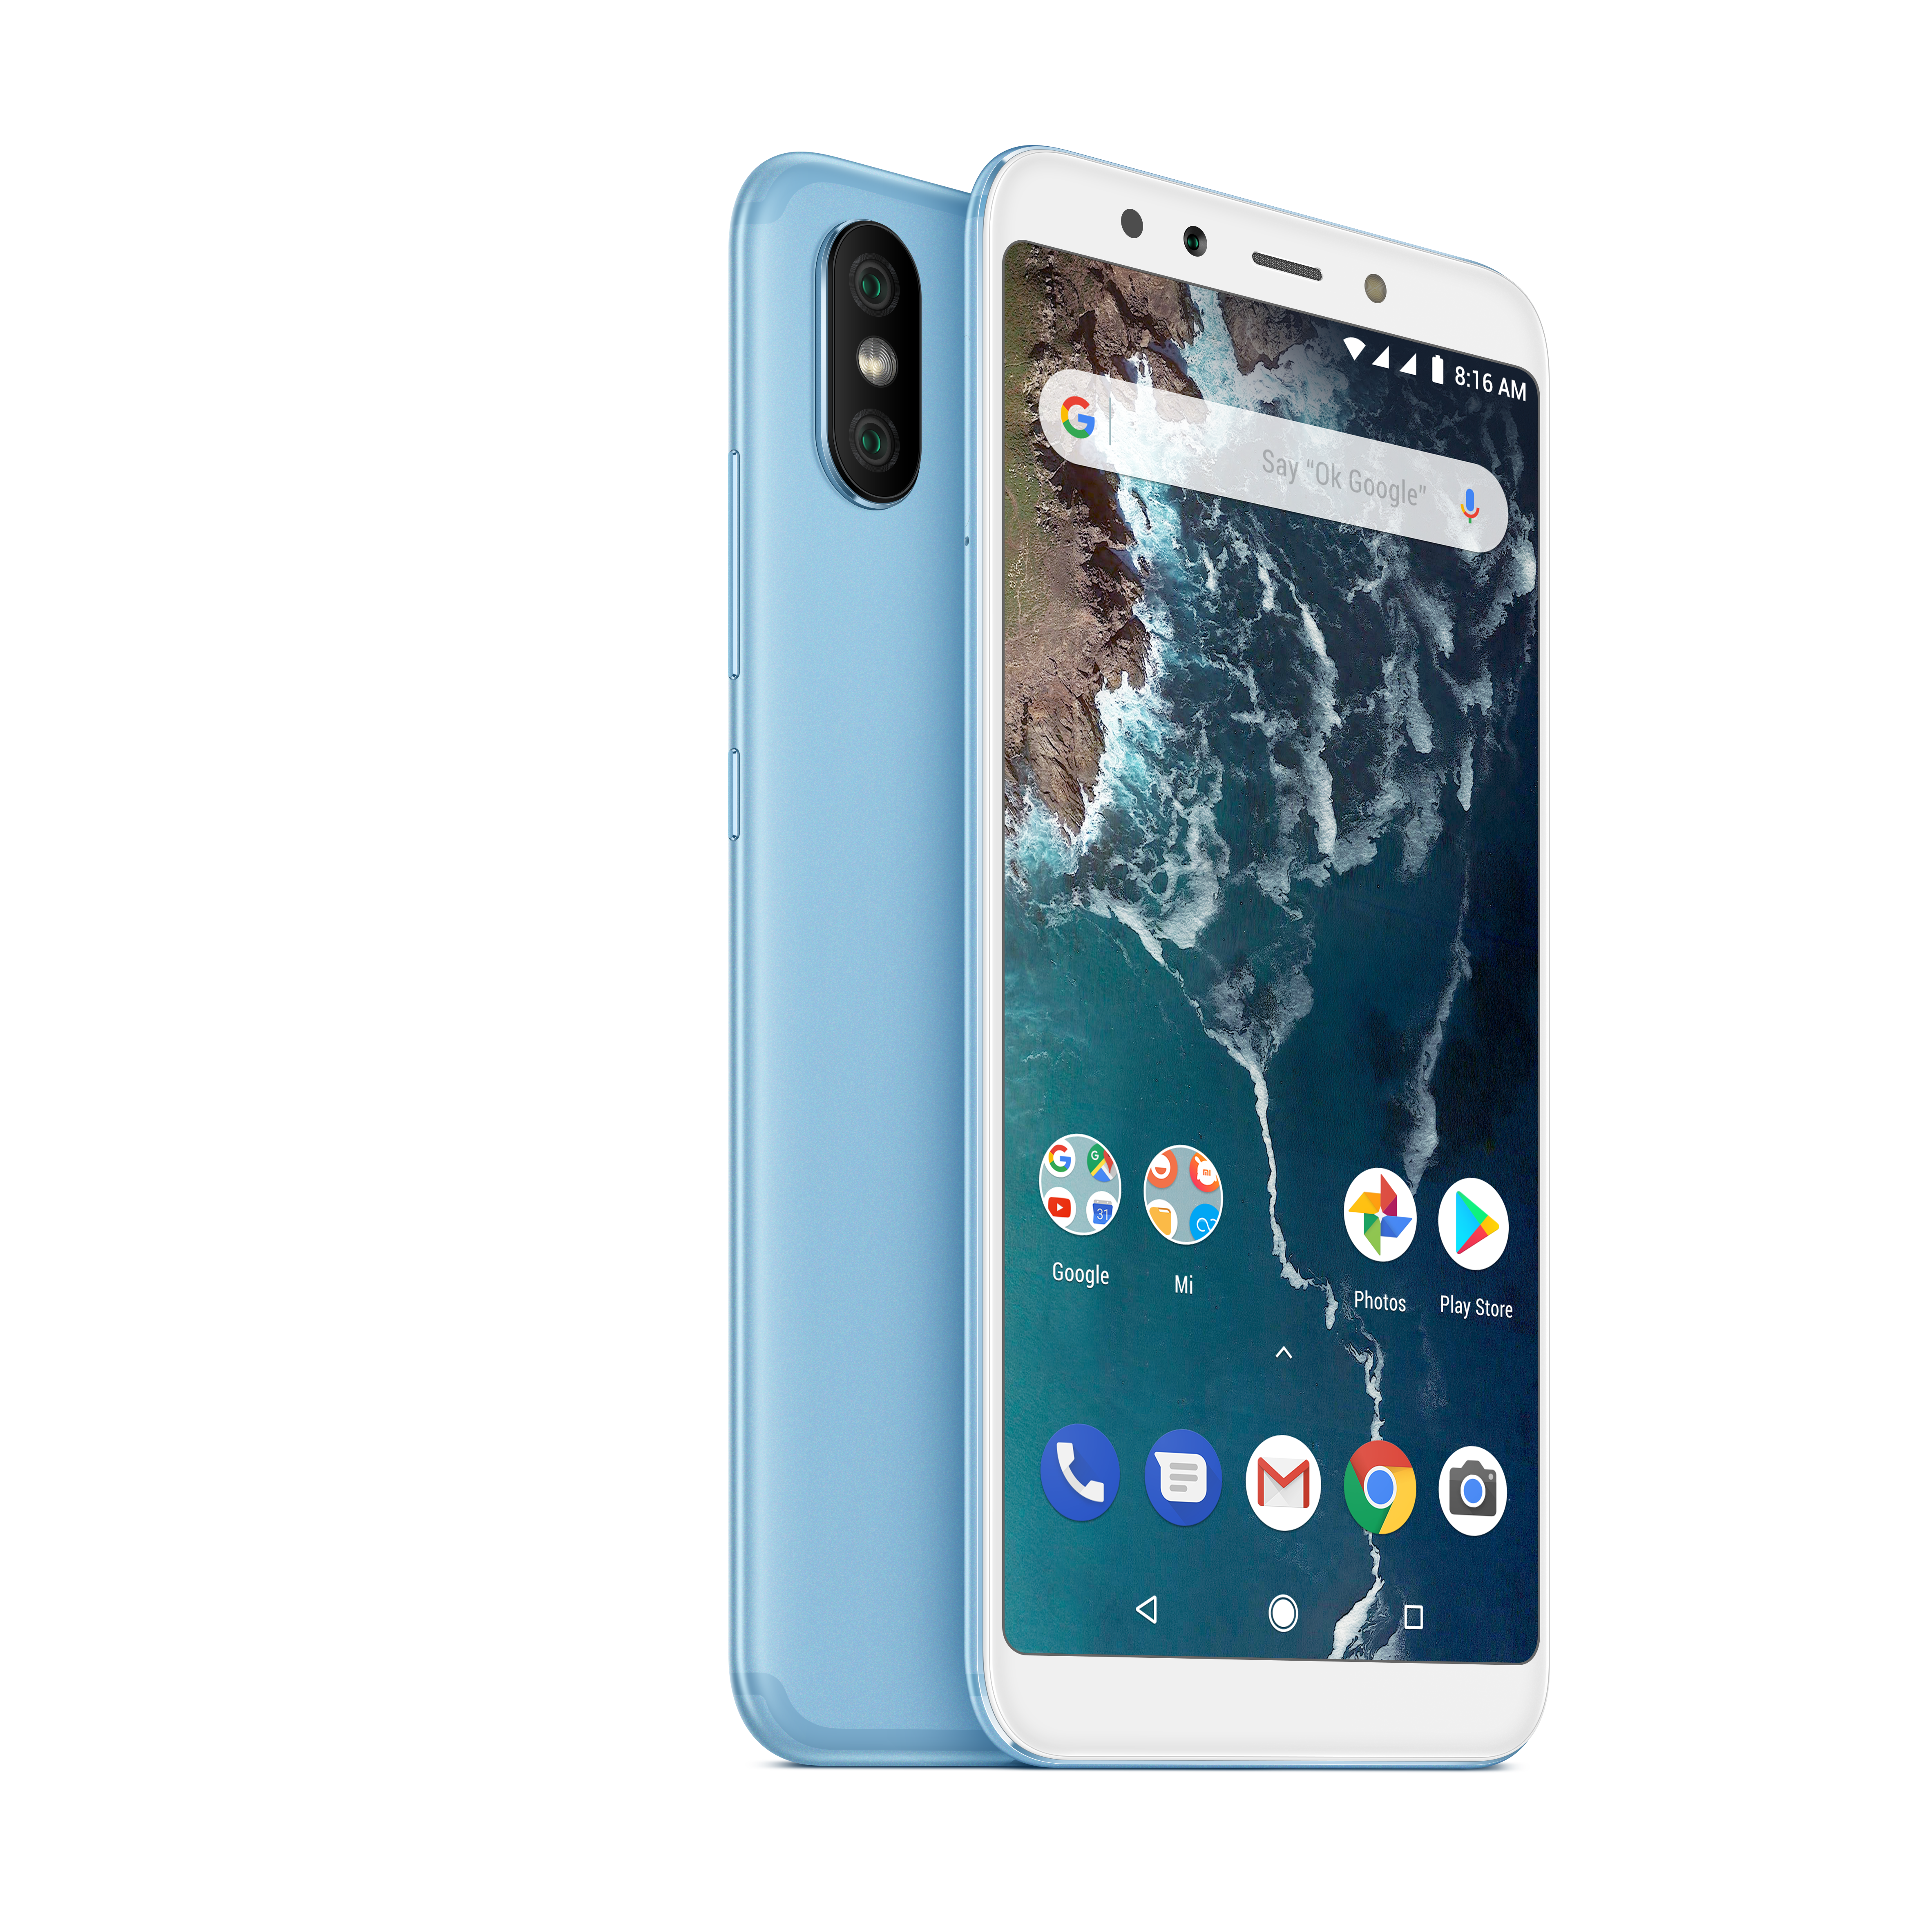 Xiaomi s first Android e smartphone was a hit and it s definite the second generation Xiaomi Mi A2 is even better The phone was launched on 24 July 2018